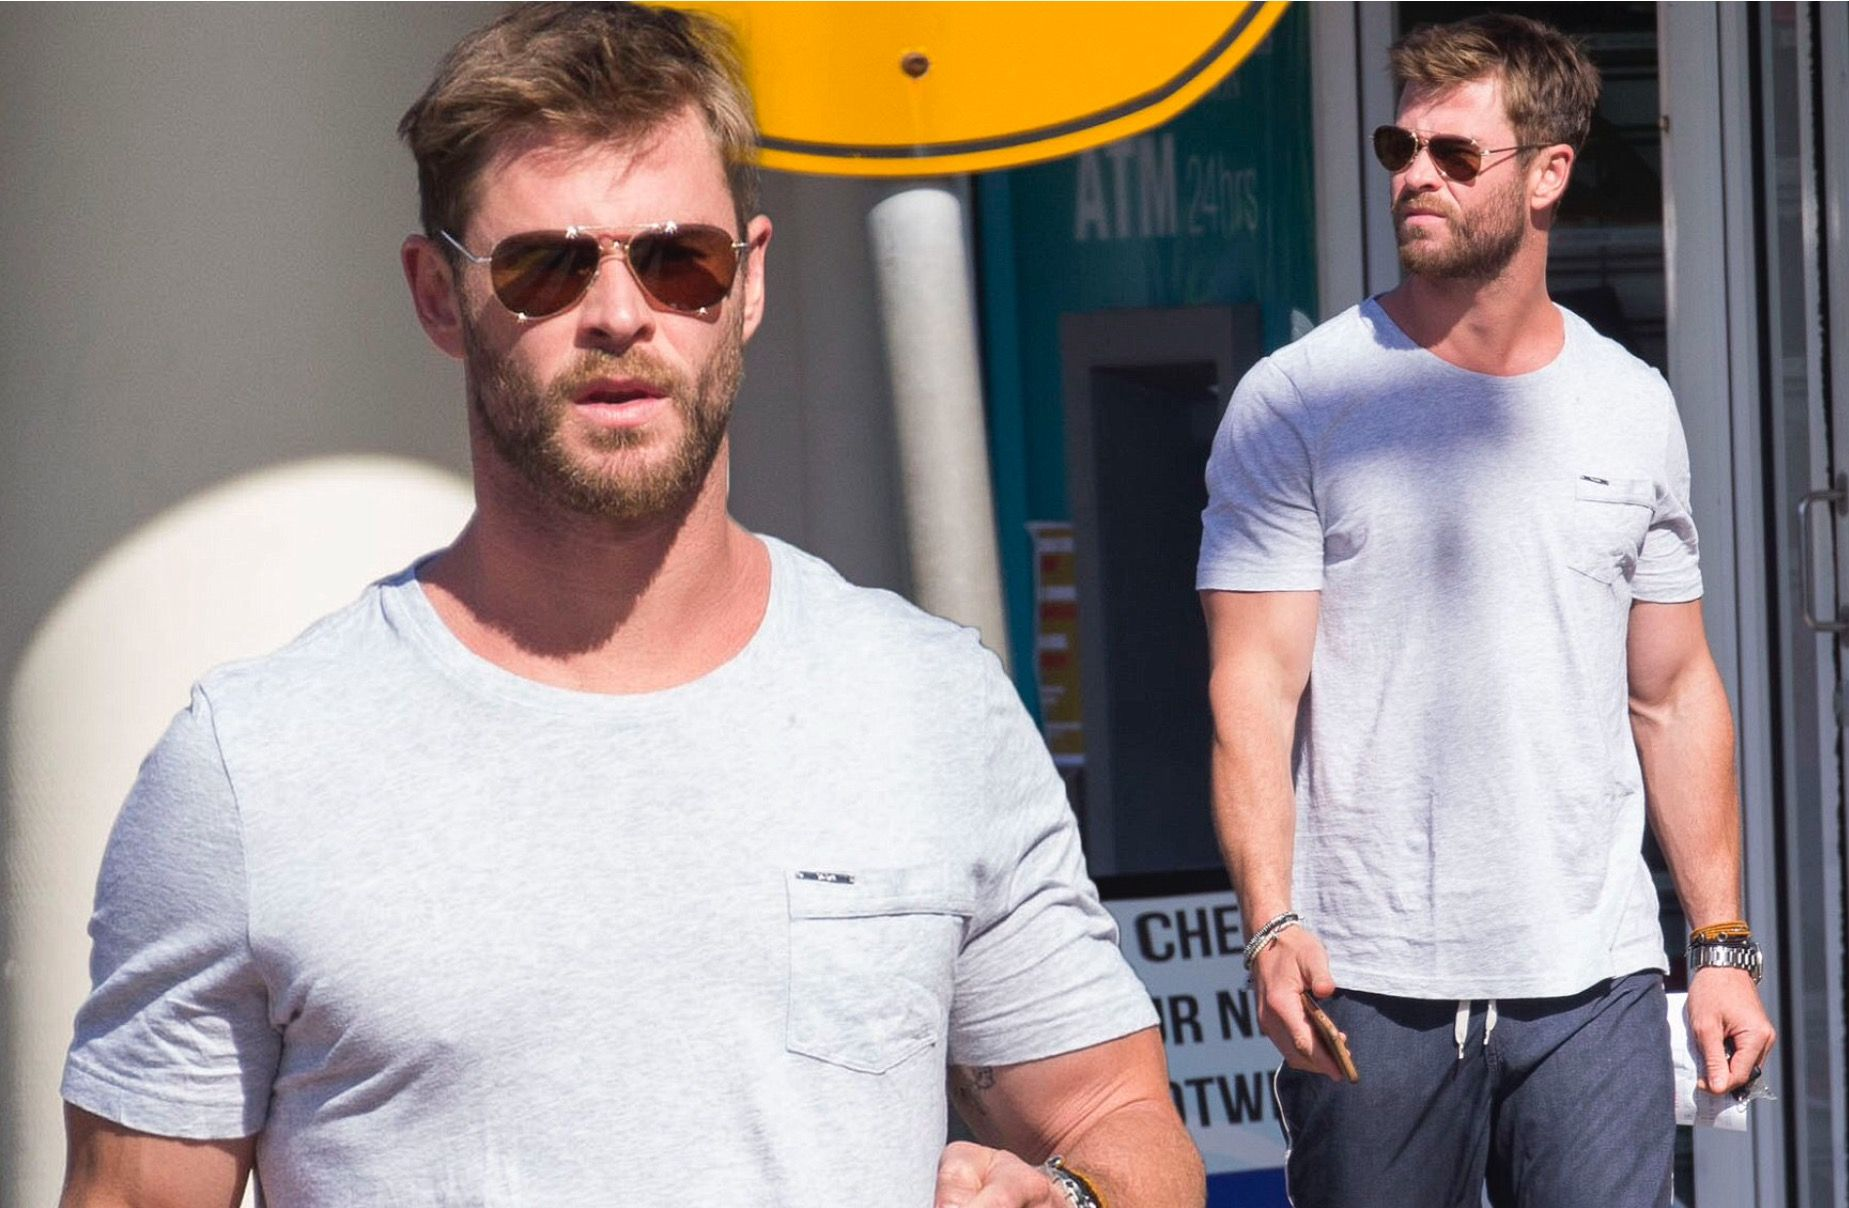 Um um Chris hemsworth